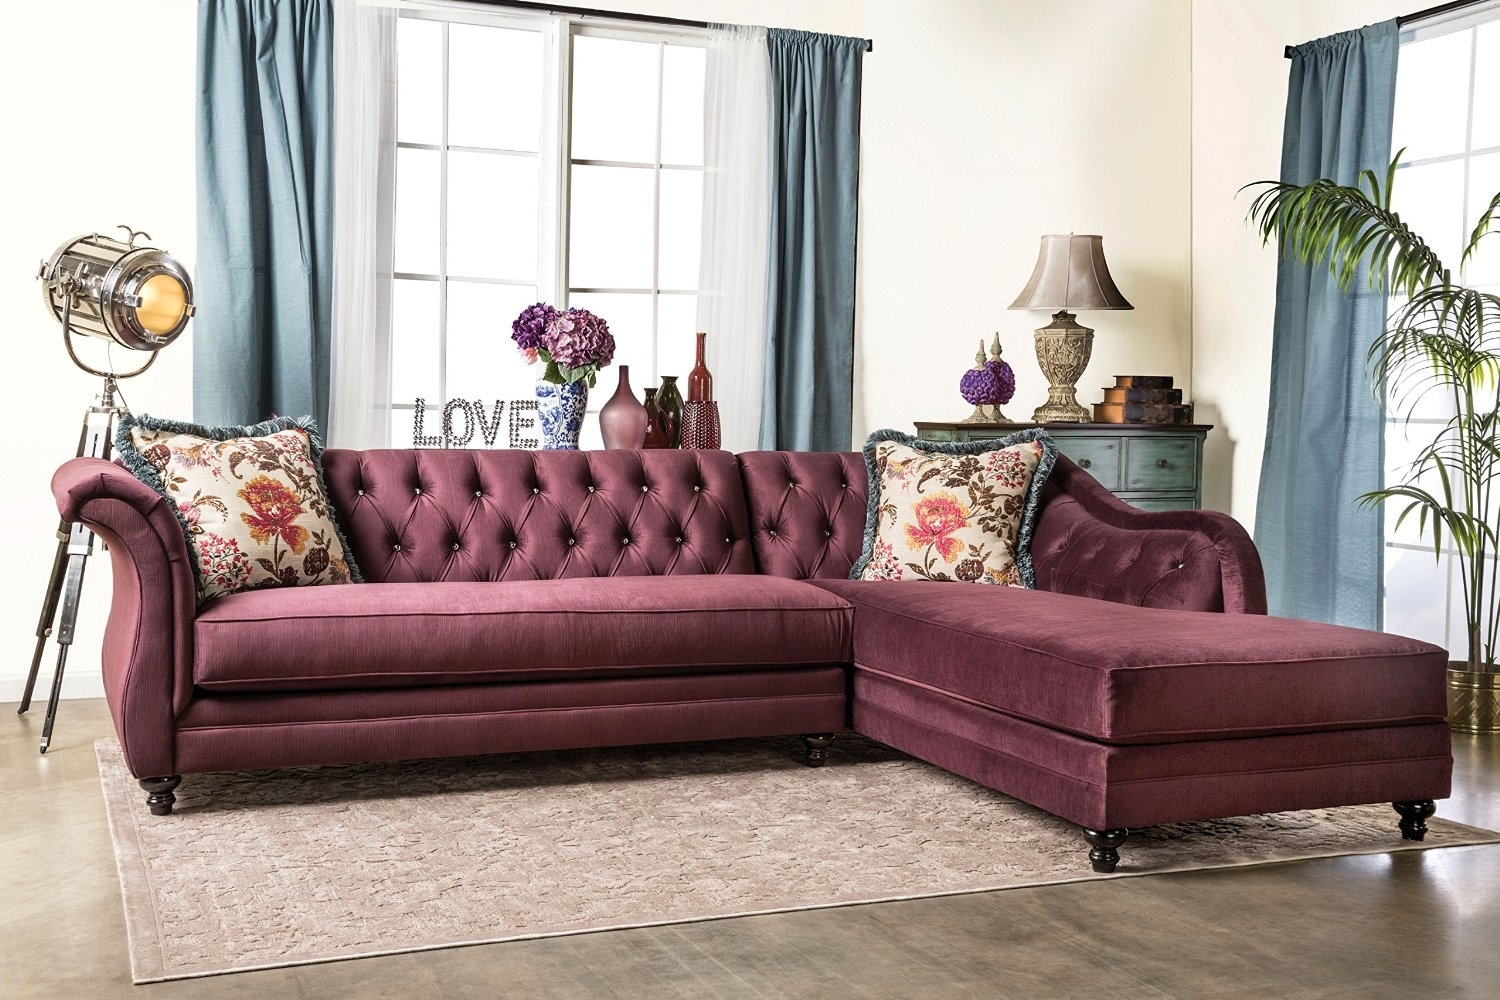 Furniture : Sectional Couch That Looks Like A Bed Sectional Couch Throughout Victoria Bc Sectional Sofas (View 6 of 10)